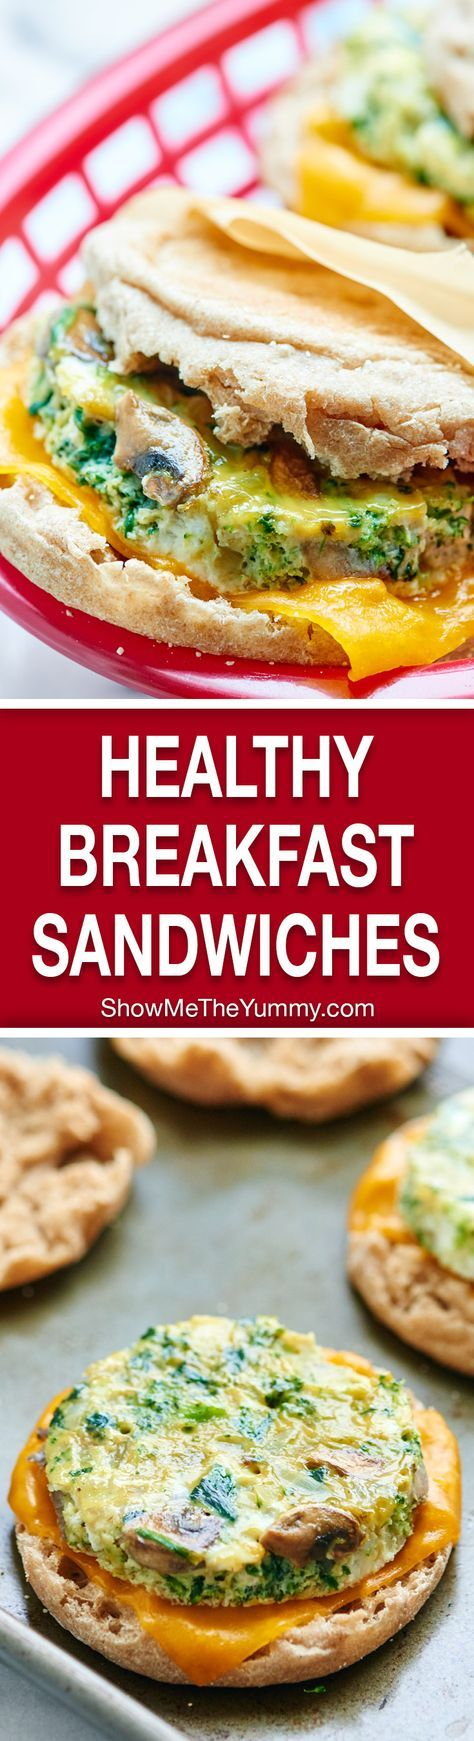 A healthy breakfast sandwich made of eggs, veggies, & optional turkey & cheese! Make these the day of or make them in advance & store in the freezer! showmetheyummy.com #healthy #breakfast